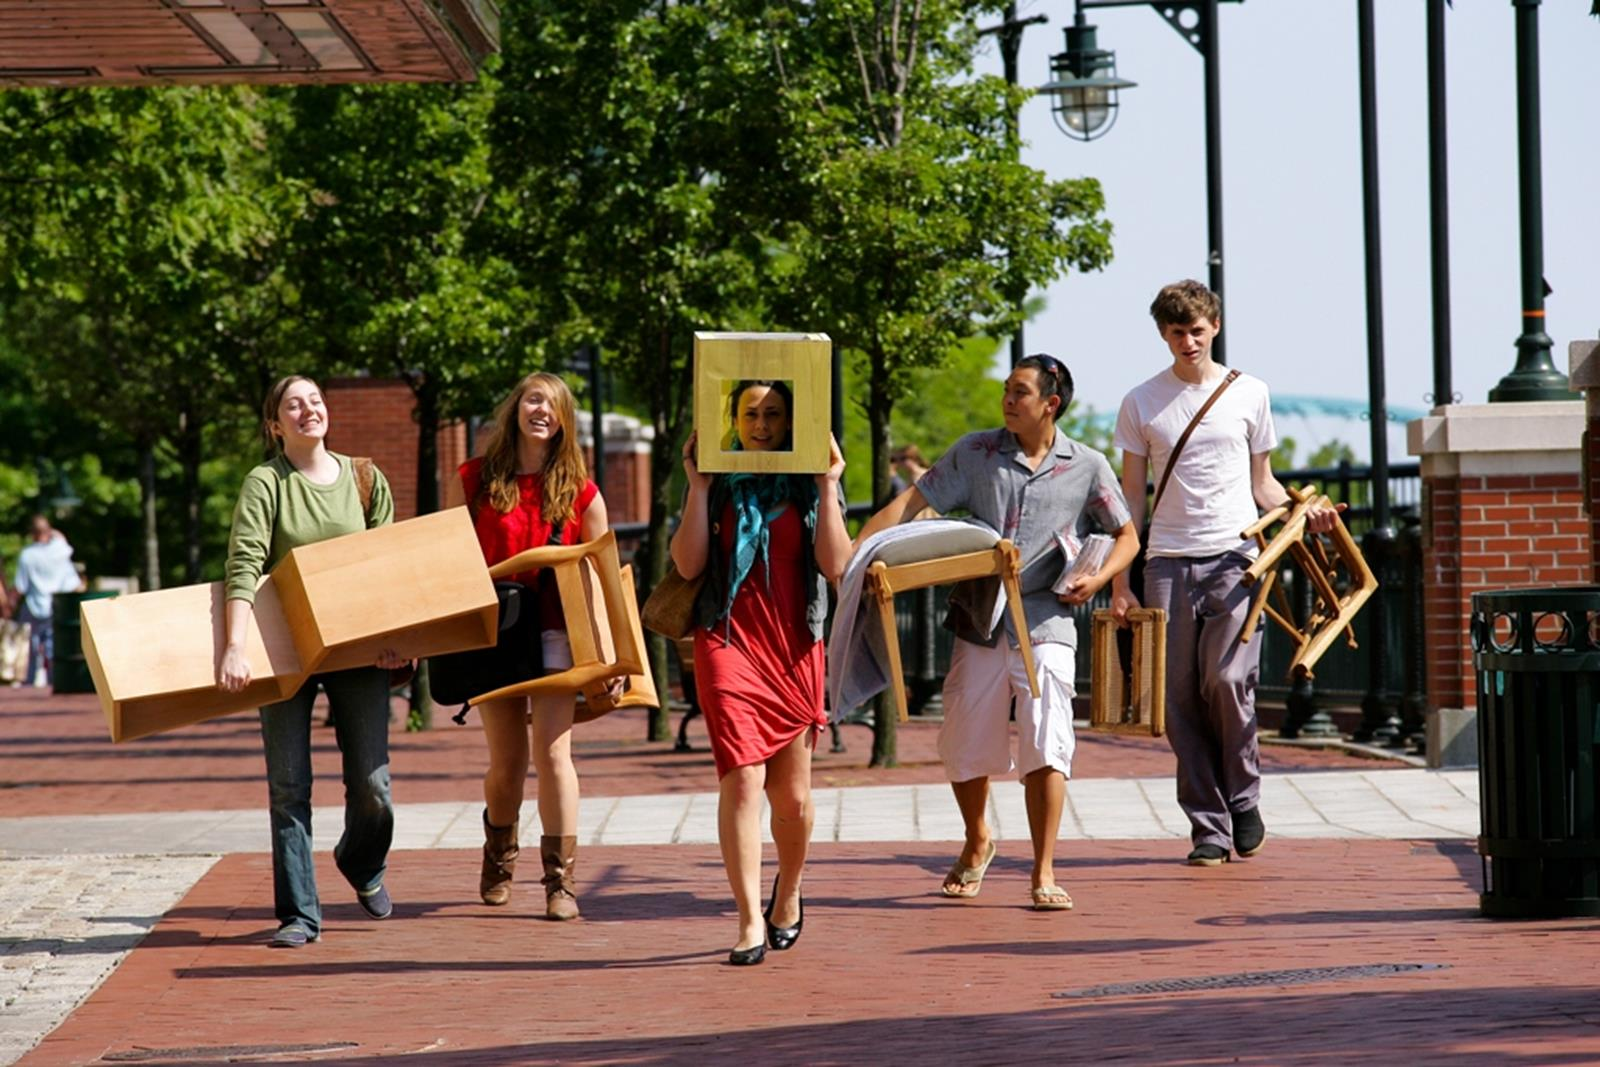 Furniture Design majors carry various projects on their way to the studio. Credit: David O'Connor